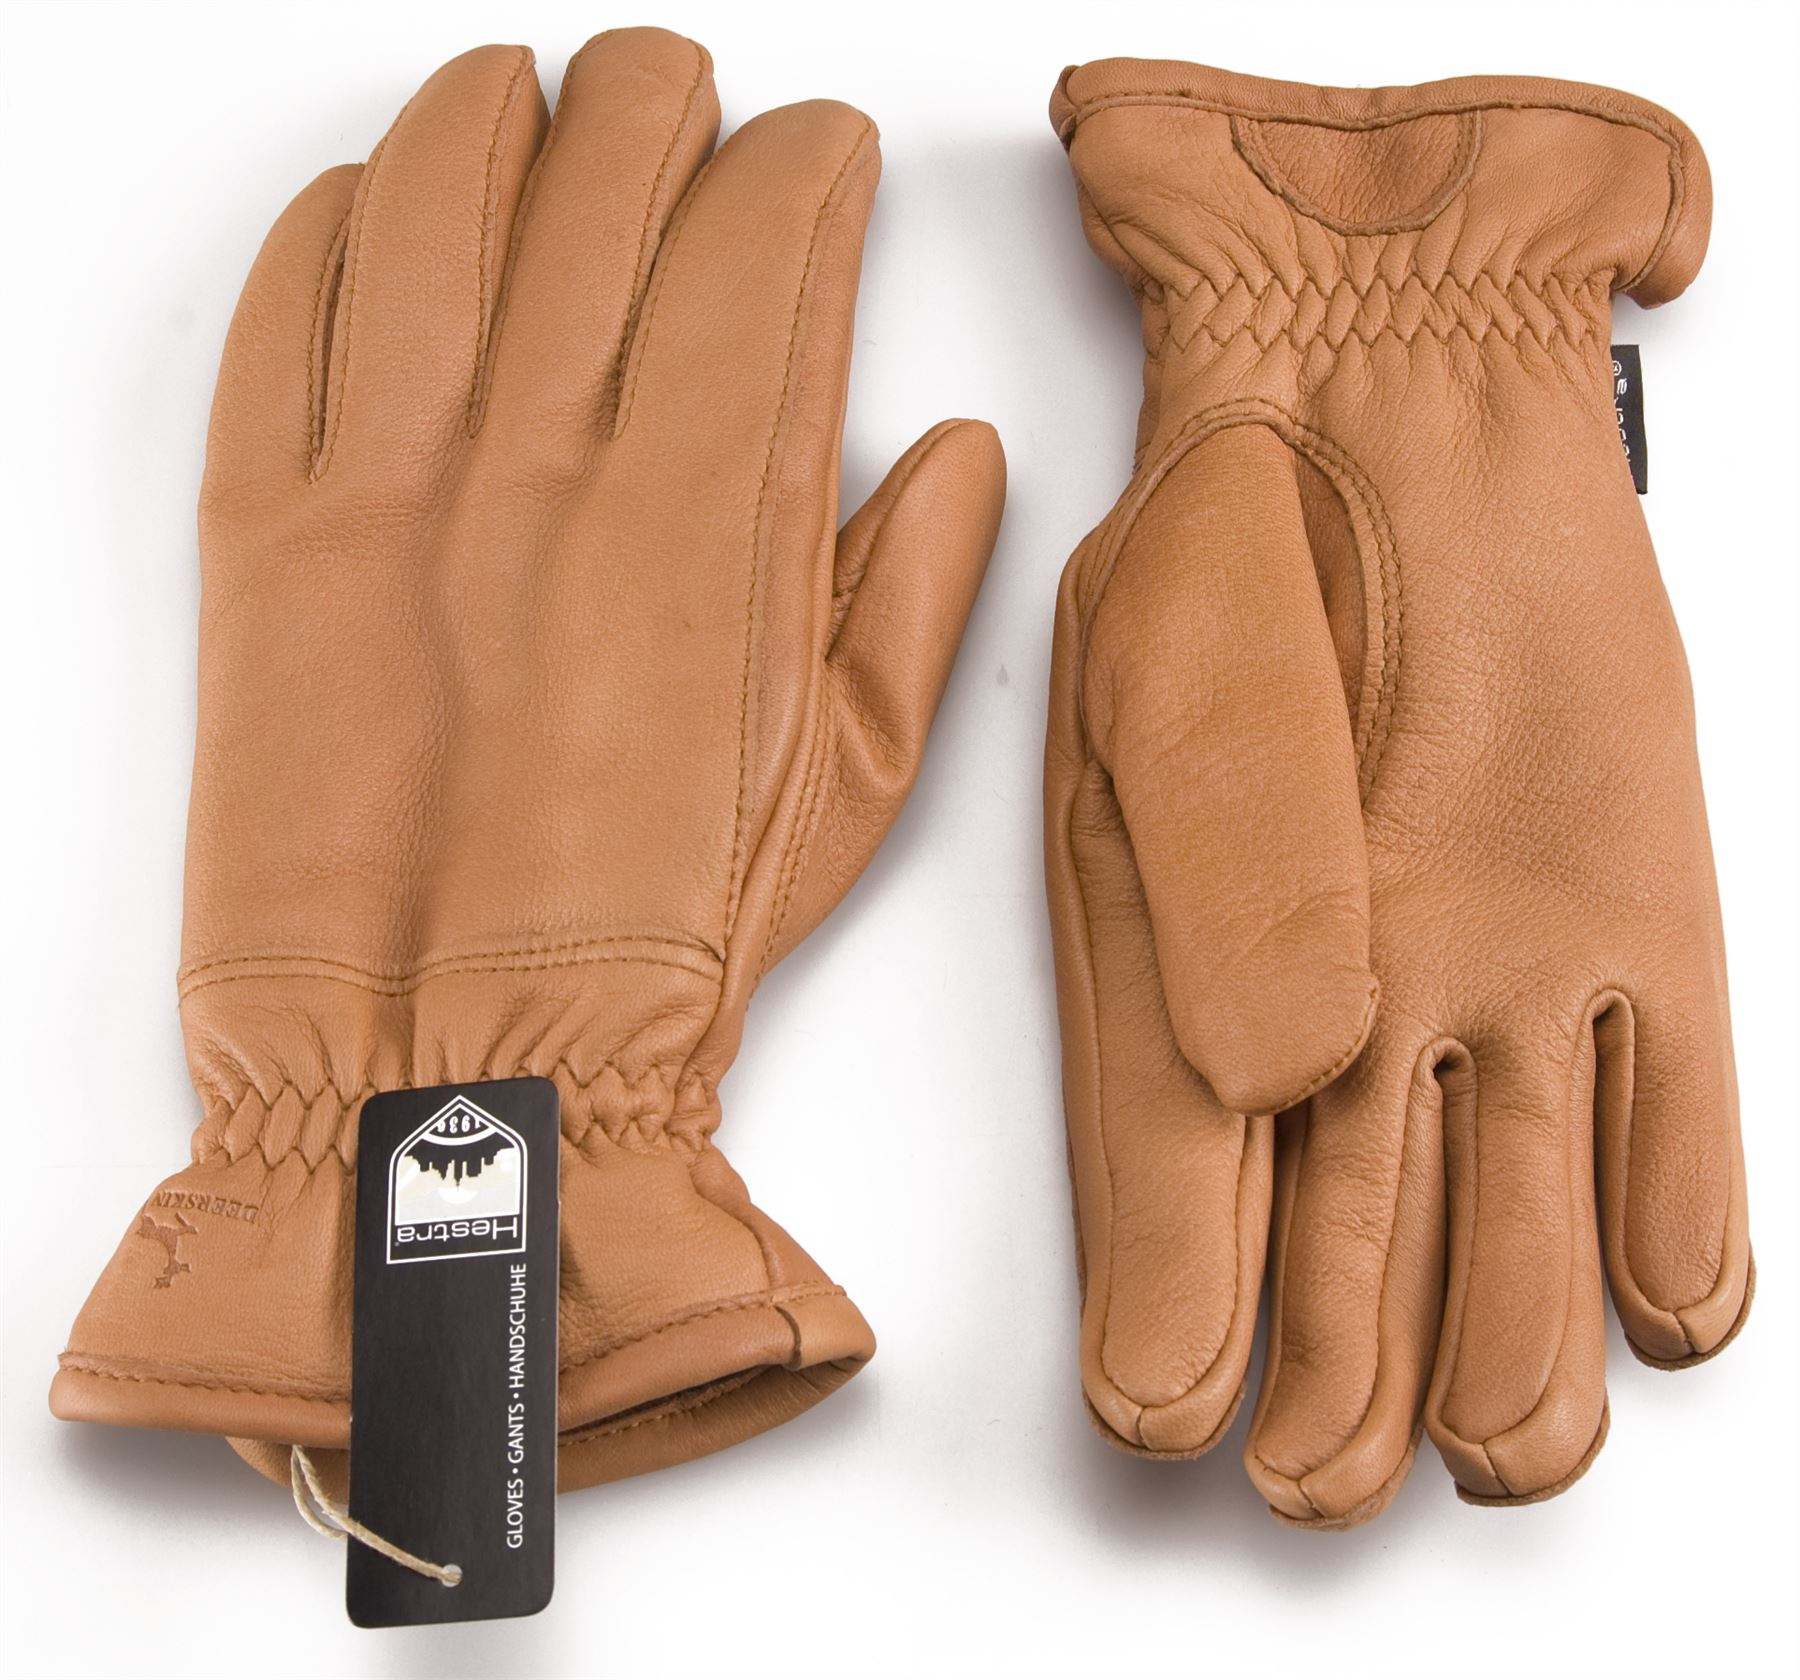 Hestra mens gloves - Hestra Premium Womens Deer Skin Leather Gloves Fleece